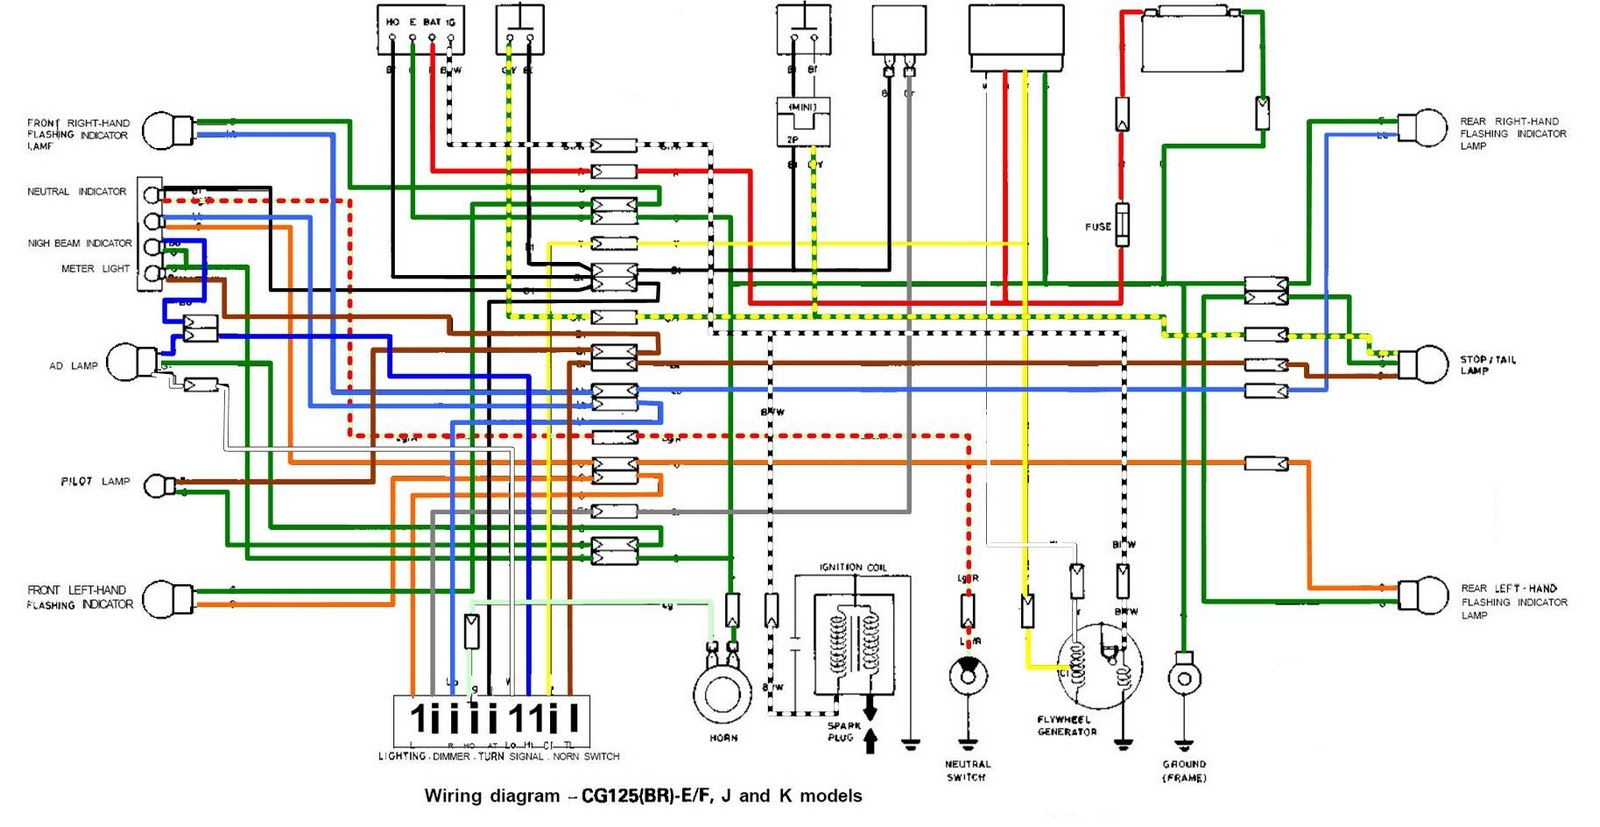 Honda CG125 Wiring Diagram Commuter Motorcycle | Free